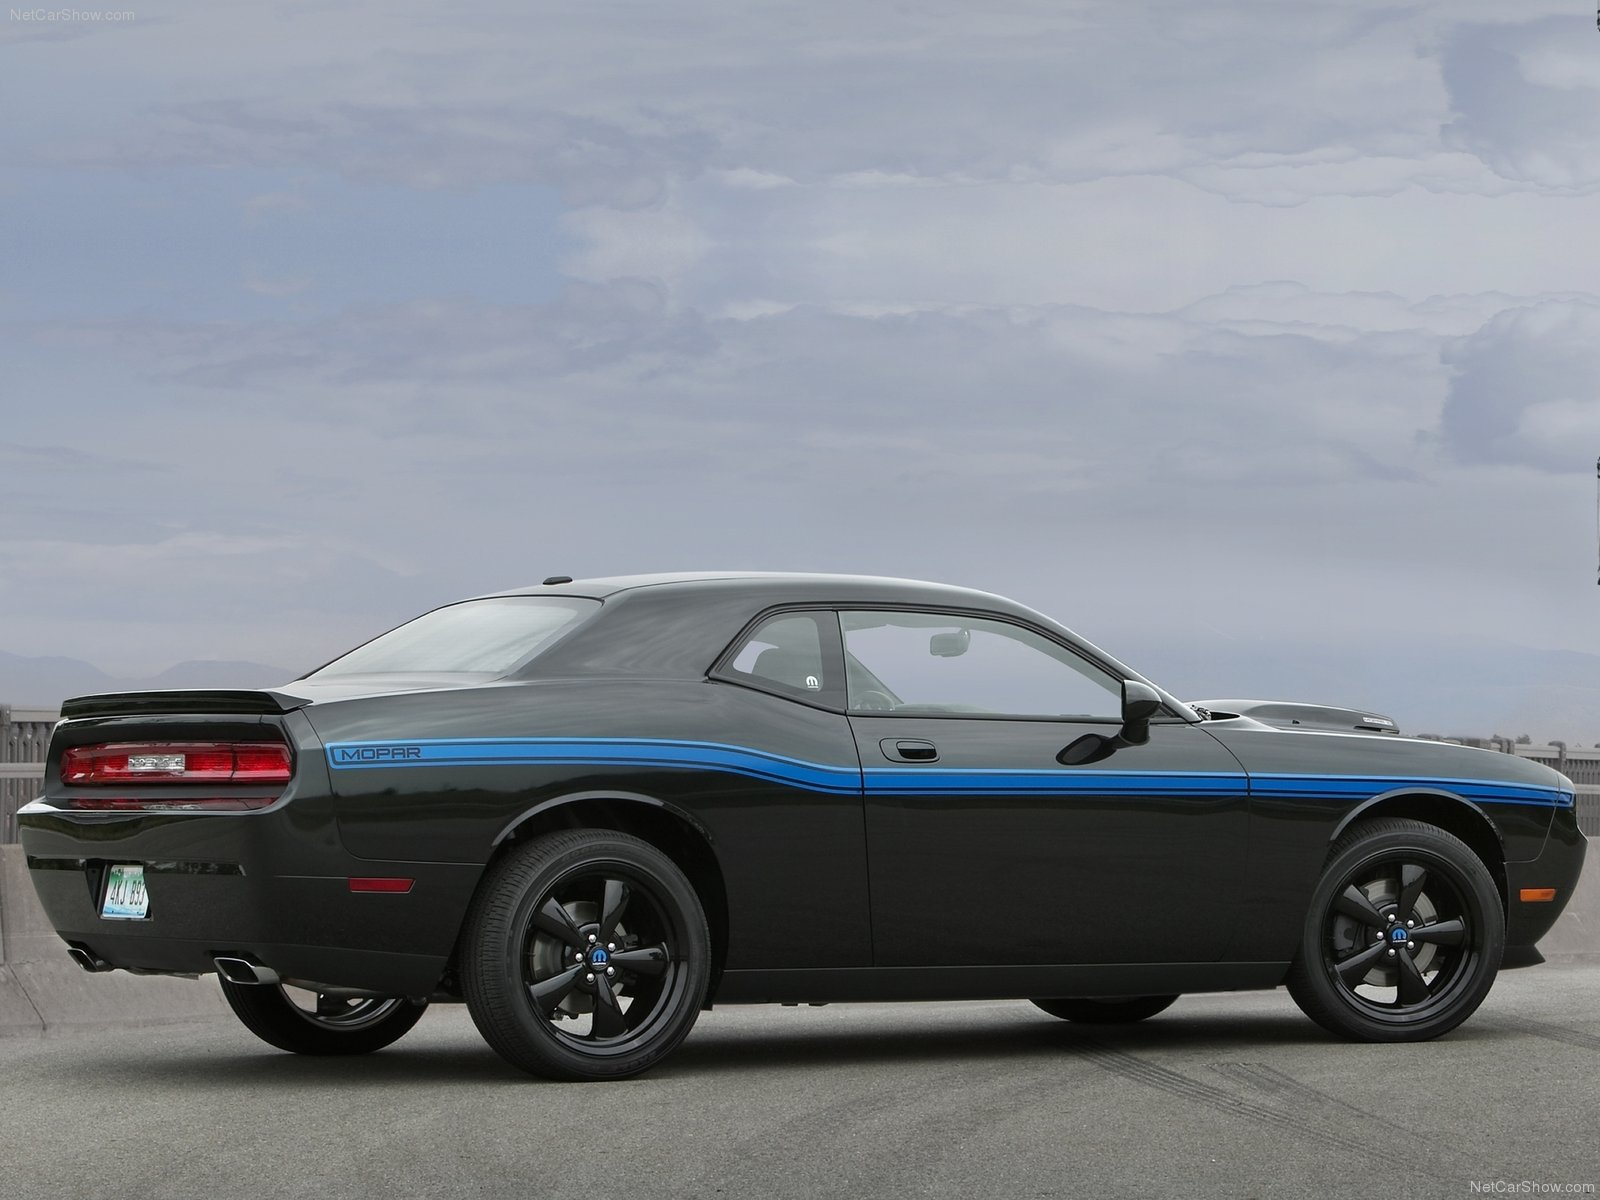 2010 dodge challenger - photo #48